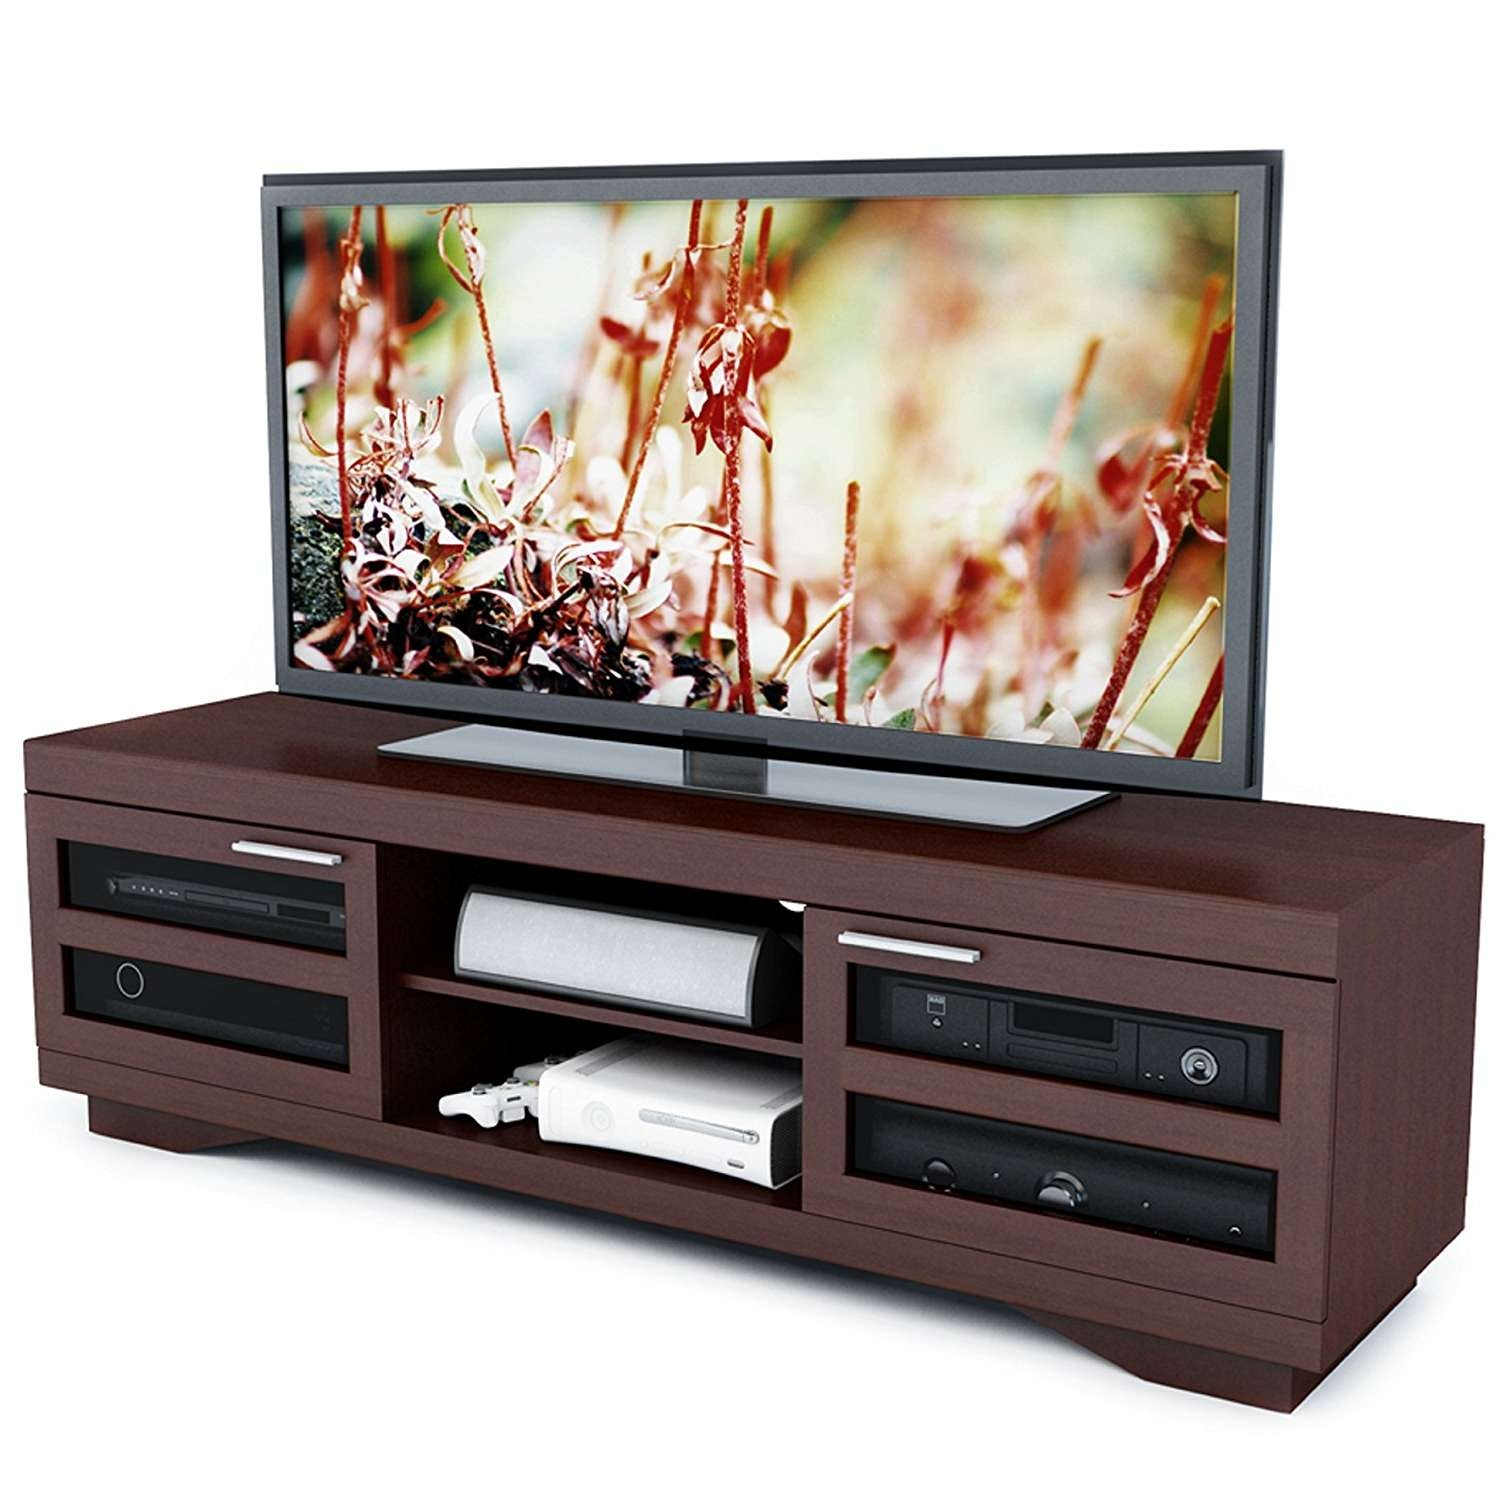 New Sonax Tv Stand 30 For Simple Home Decoration Ideas With Sonax In Sonax Tv Stands (View 9 of 15)